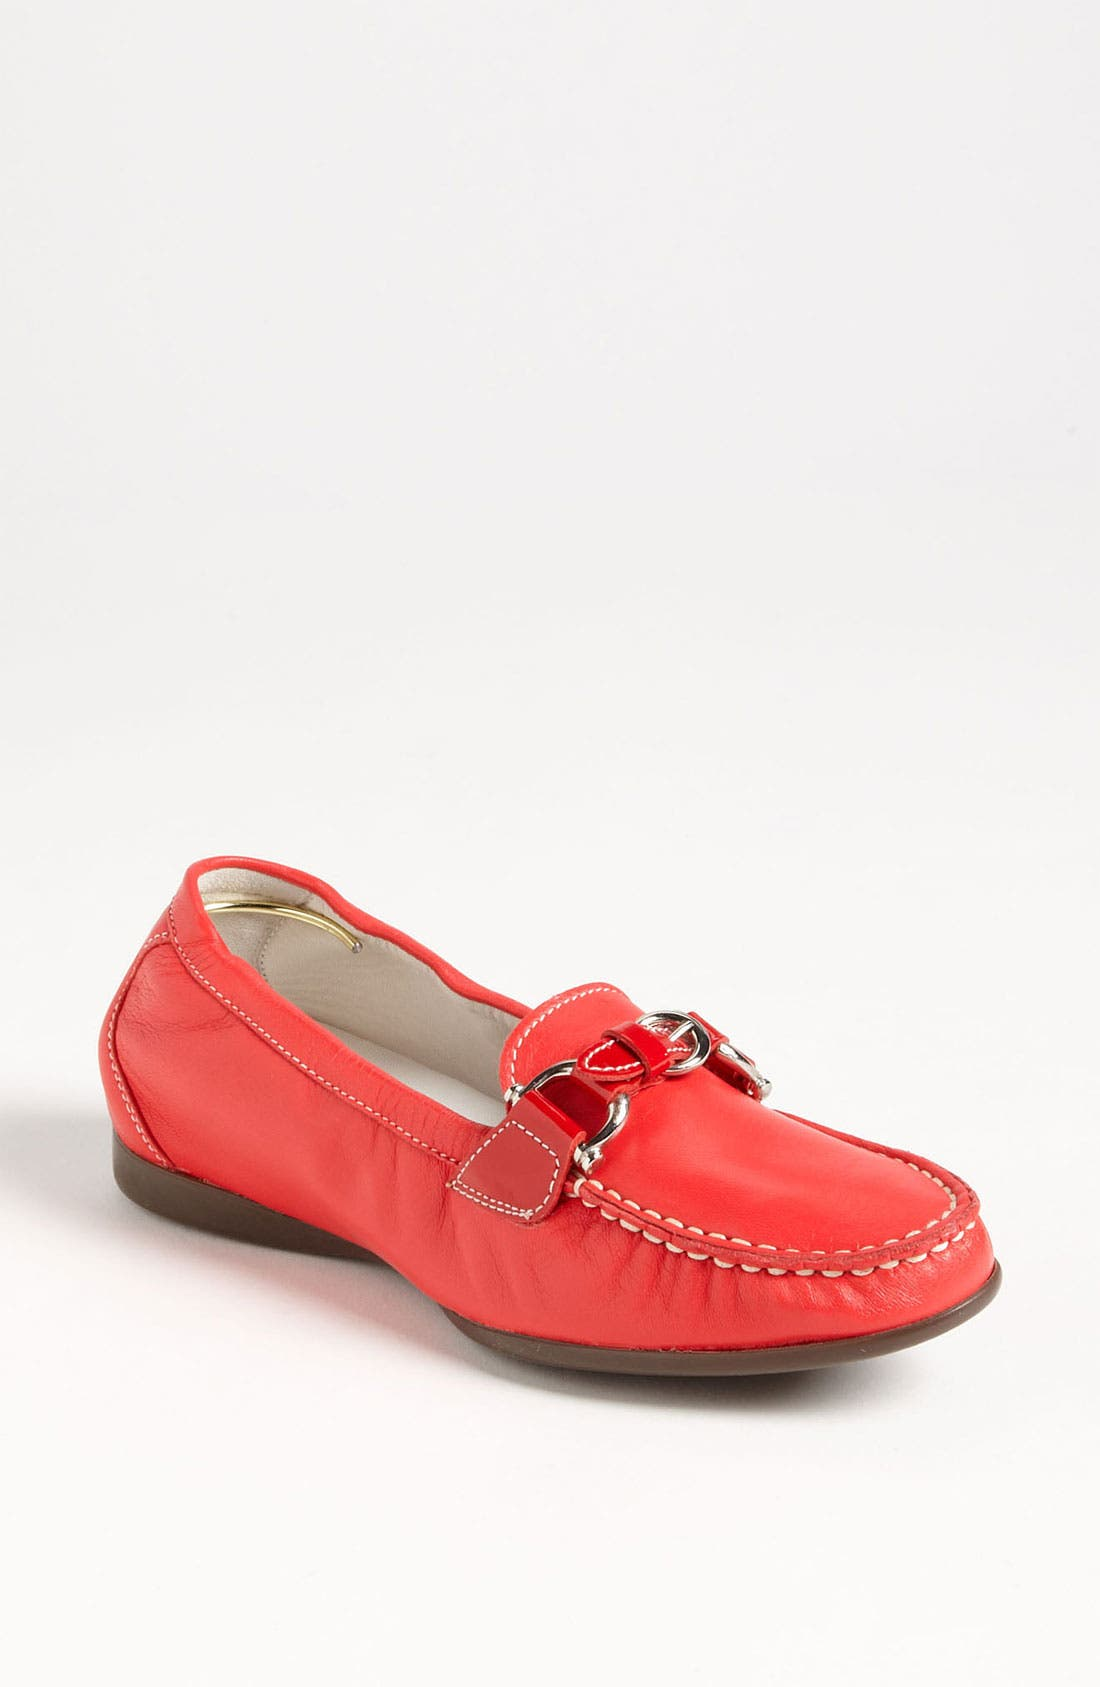 Alternate Image 1 Selected - Attilio Giusti Leombruni Moccassin (Women)